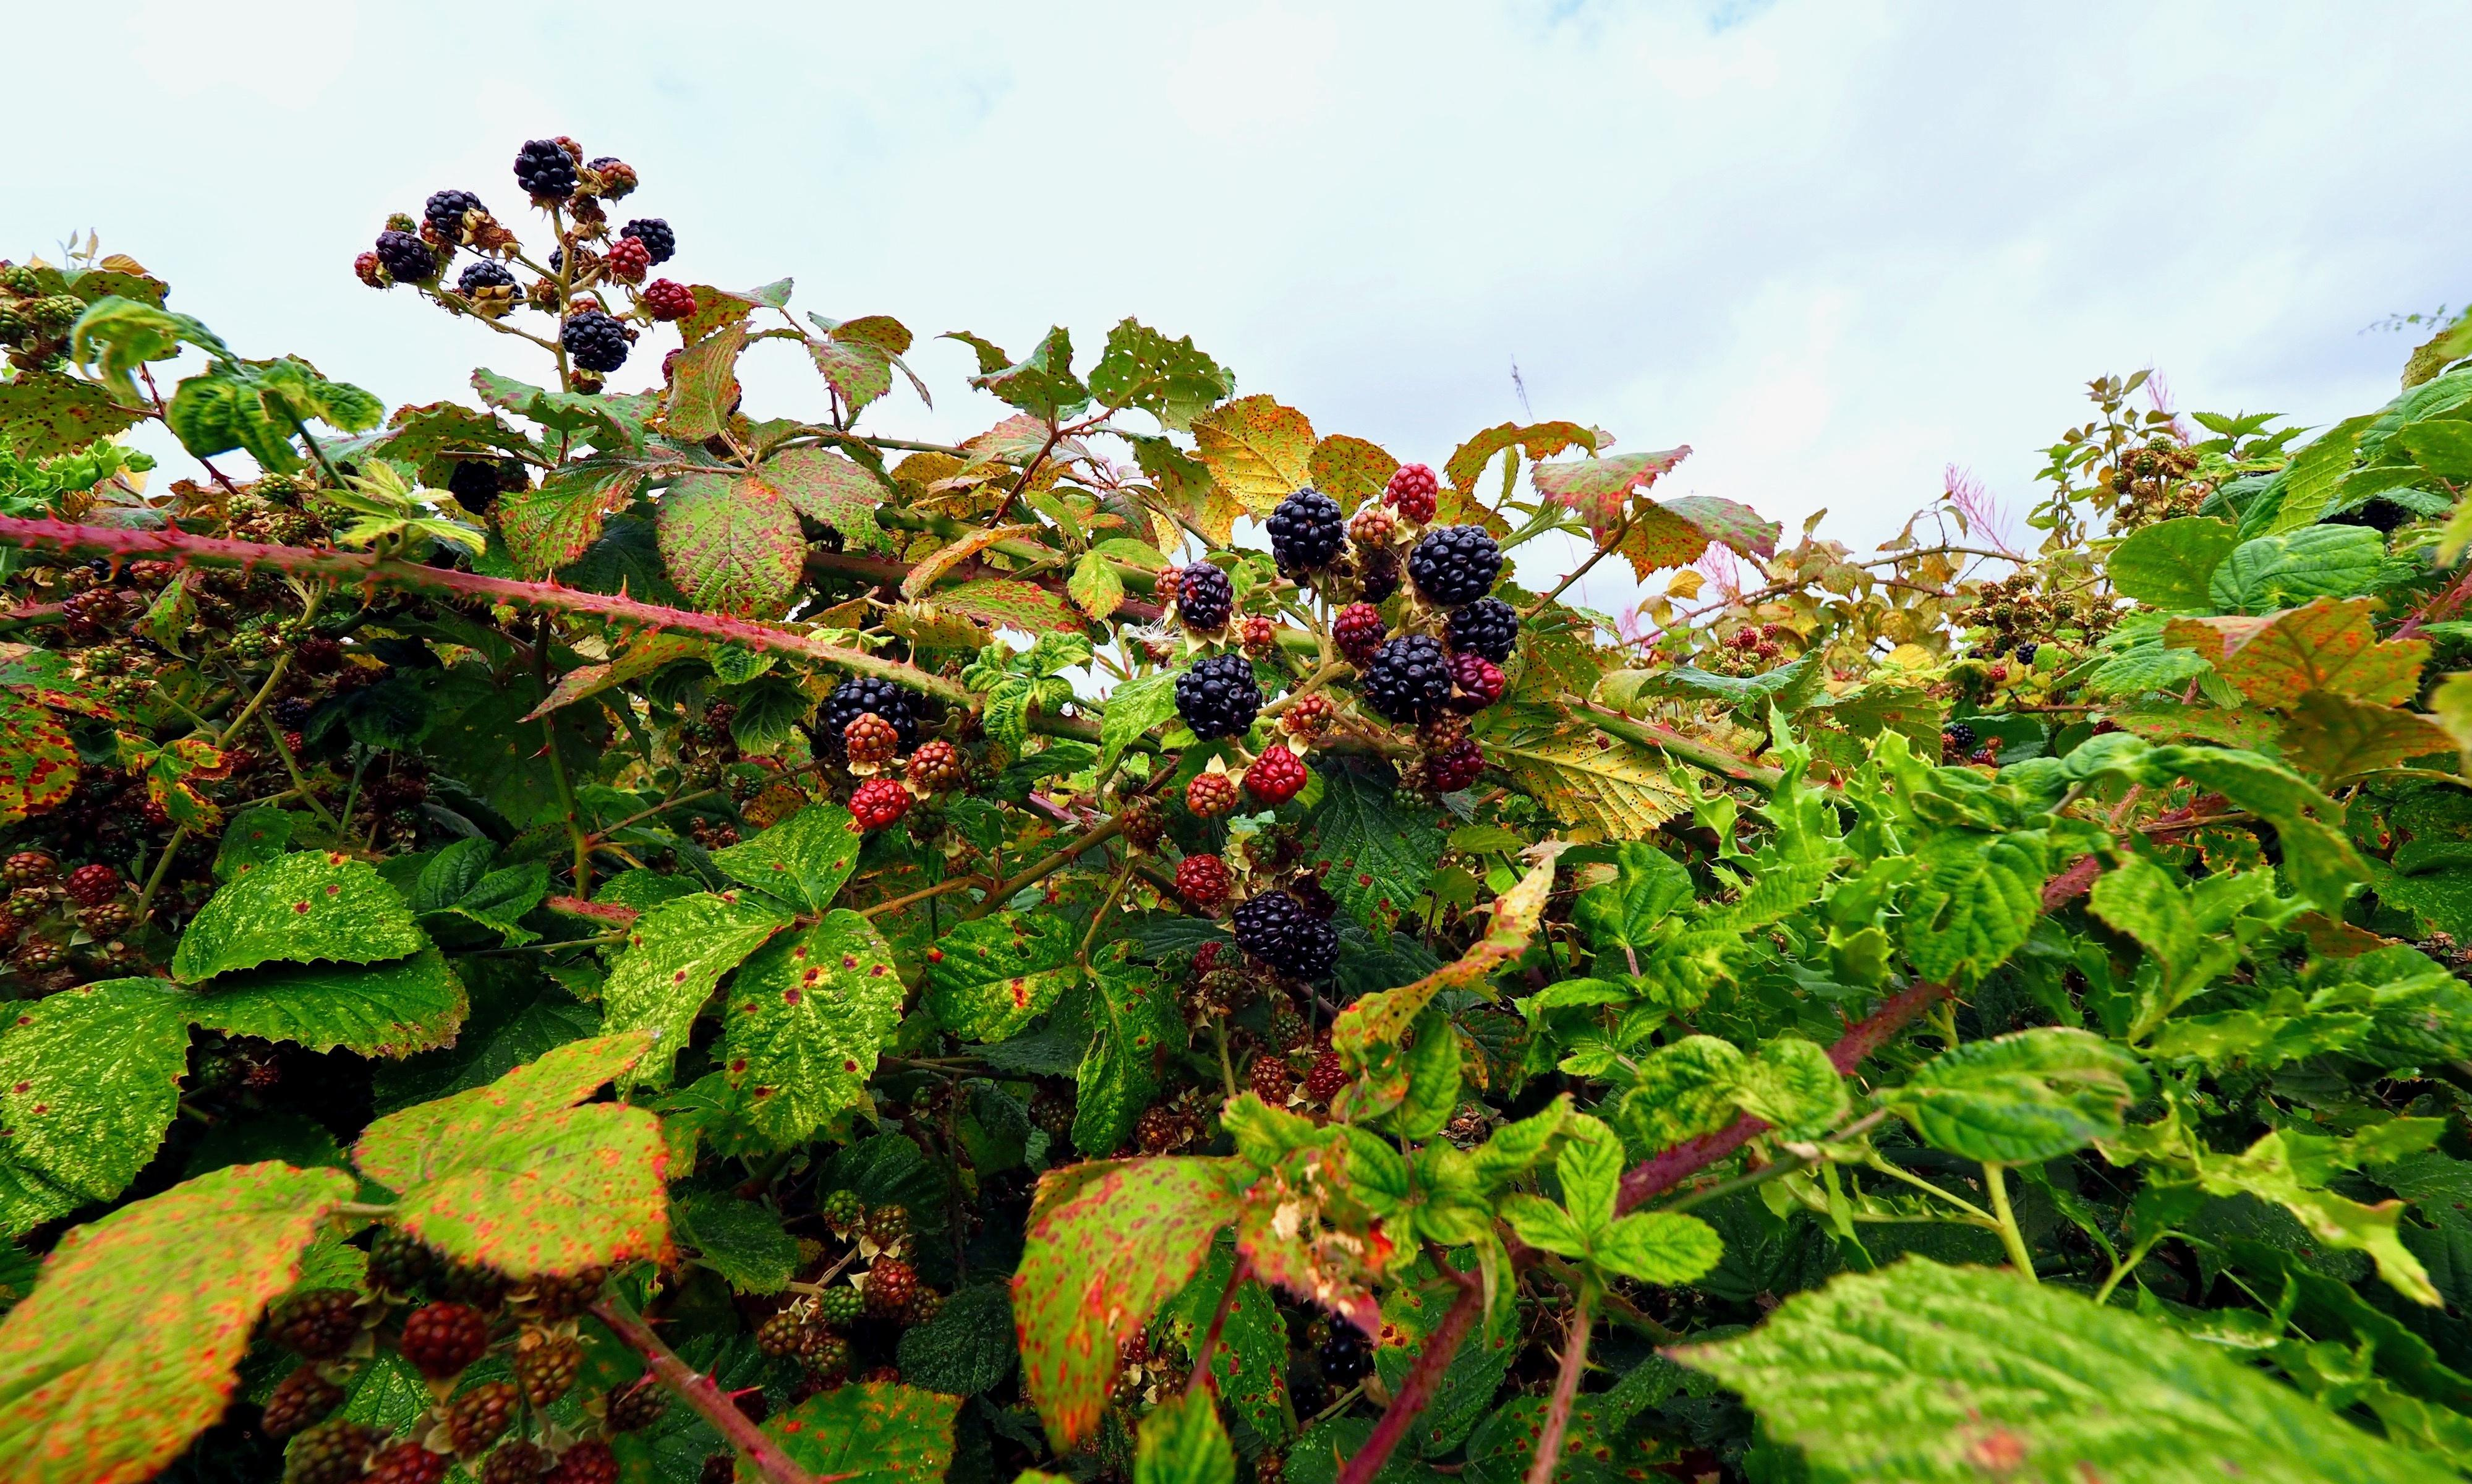 Country diary: blackberries are ripe with possibility and paradox